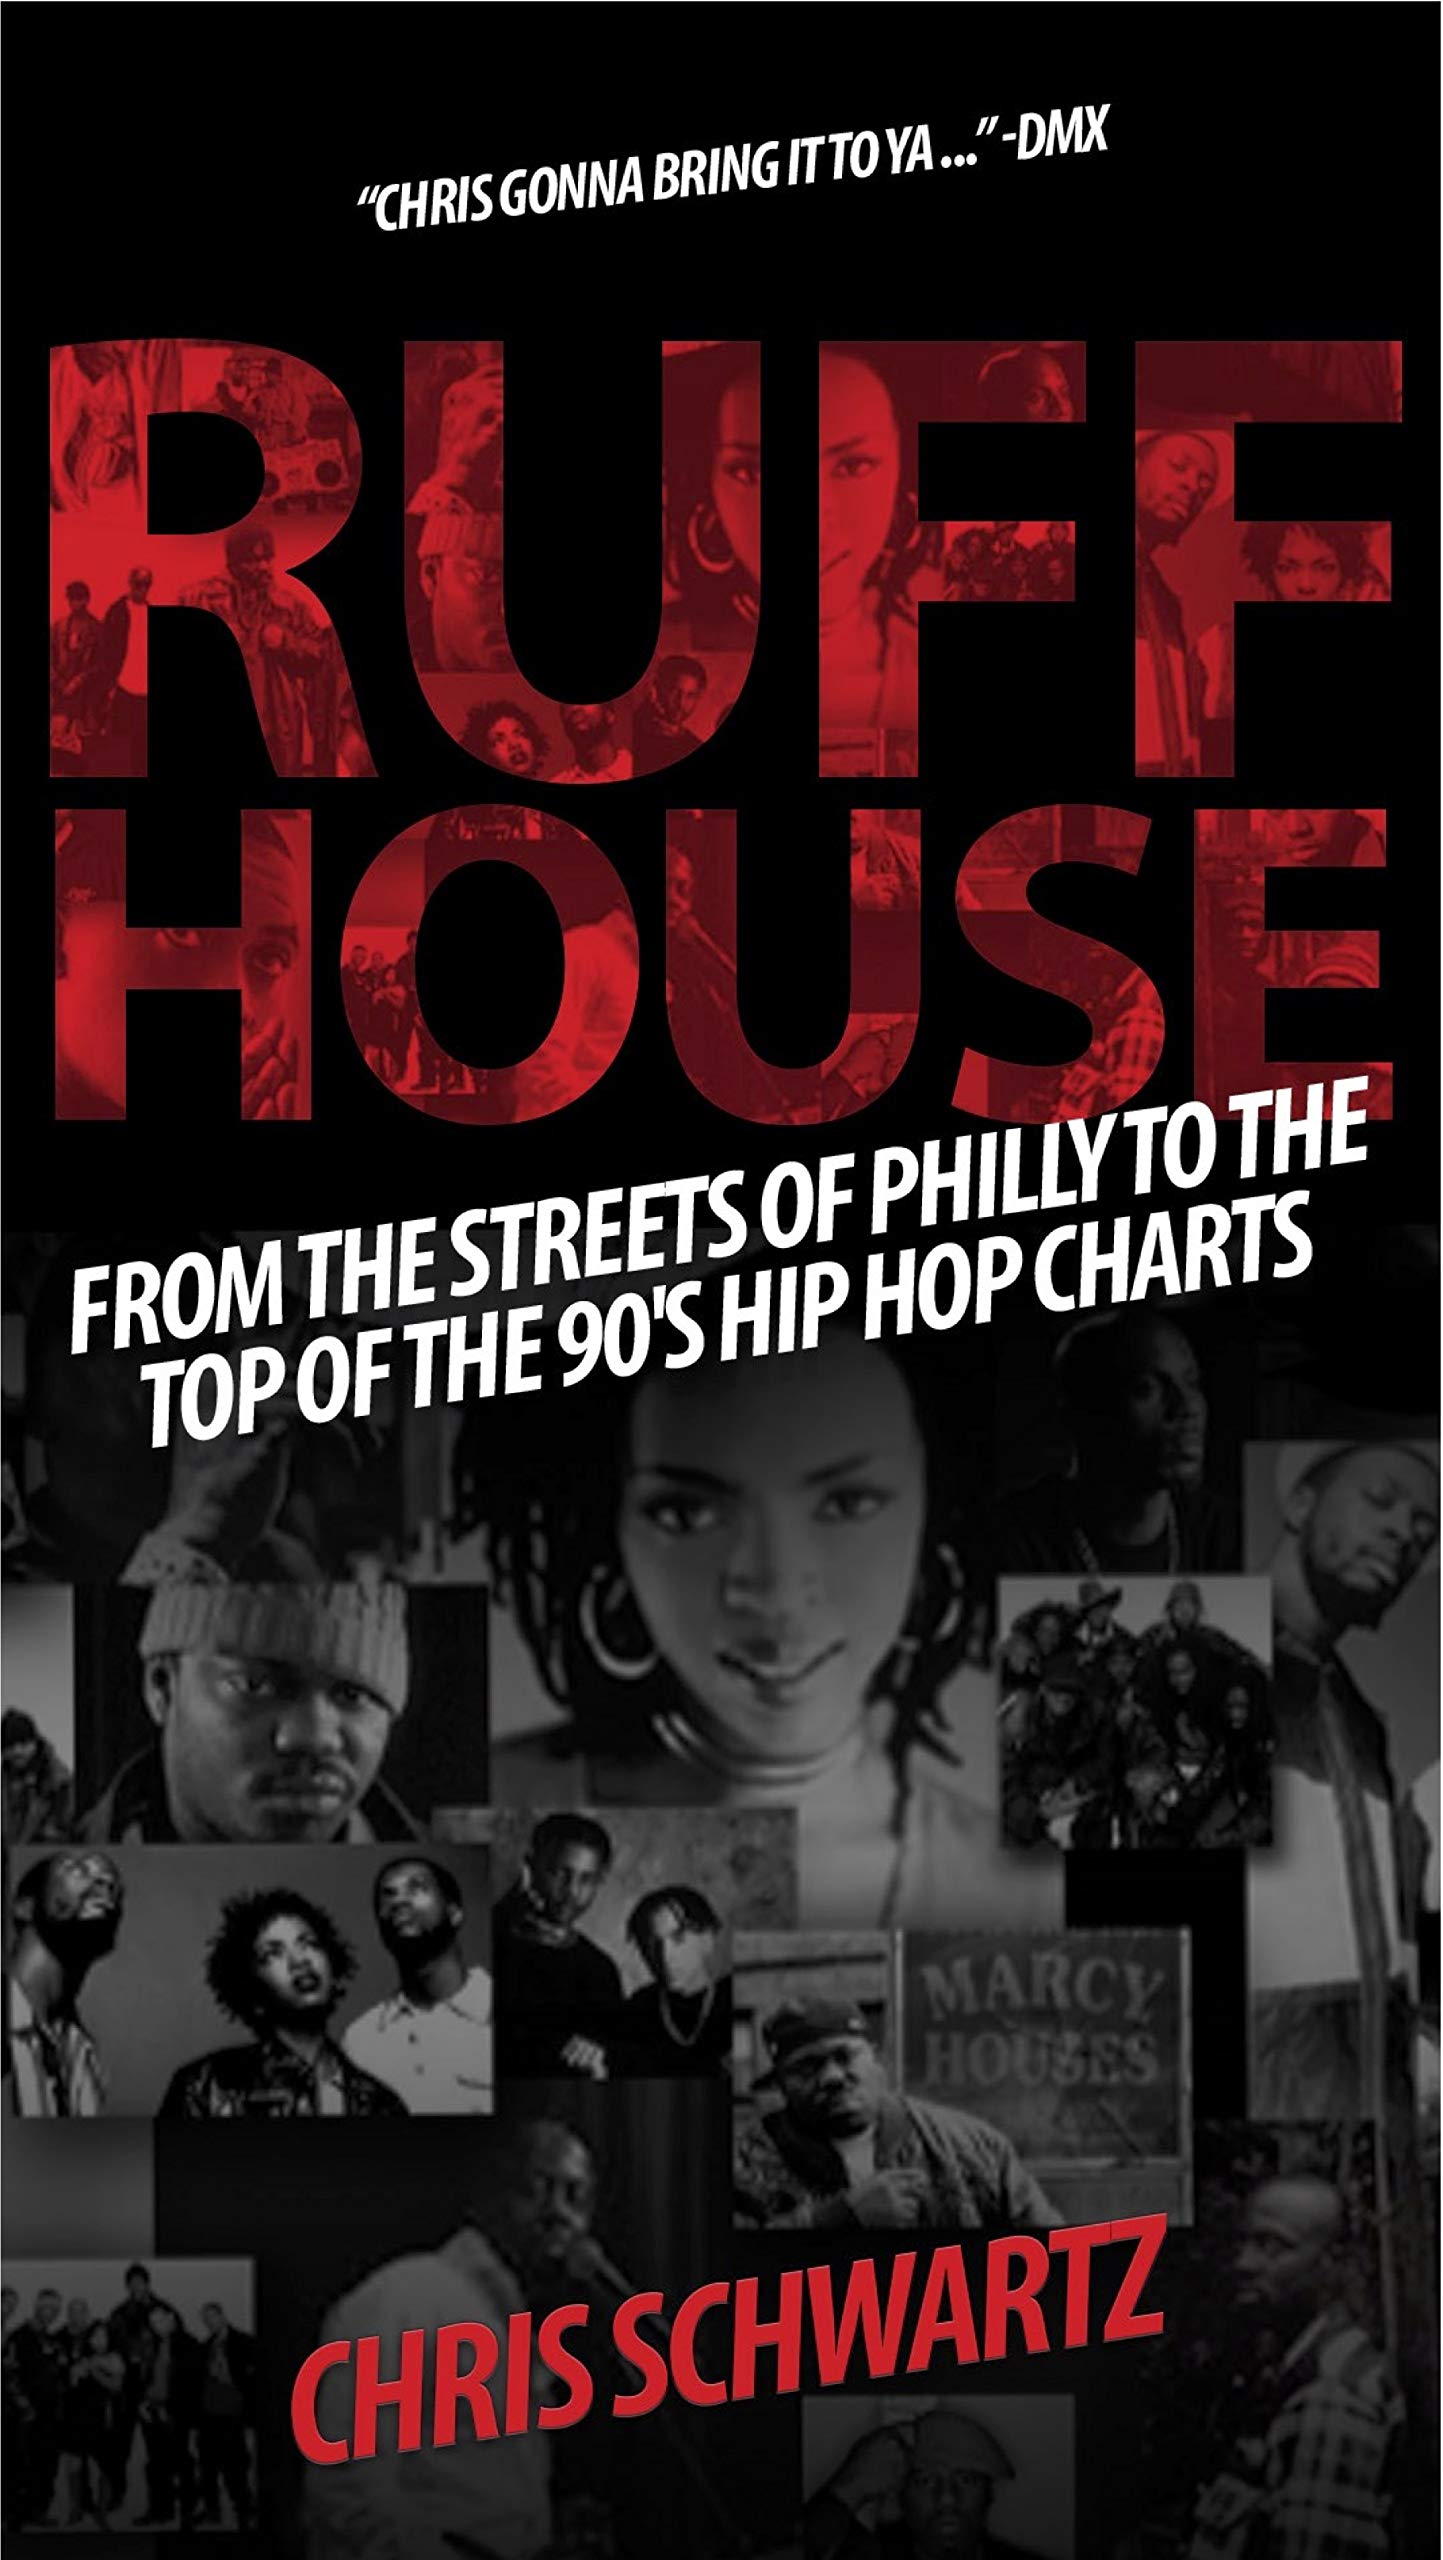 Ruffhouse: From the Streets of Philly to the Top of the '90s Hip Hop